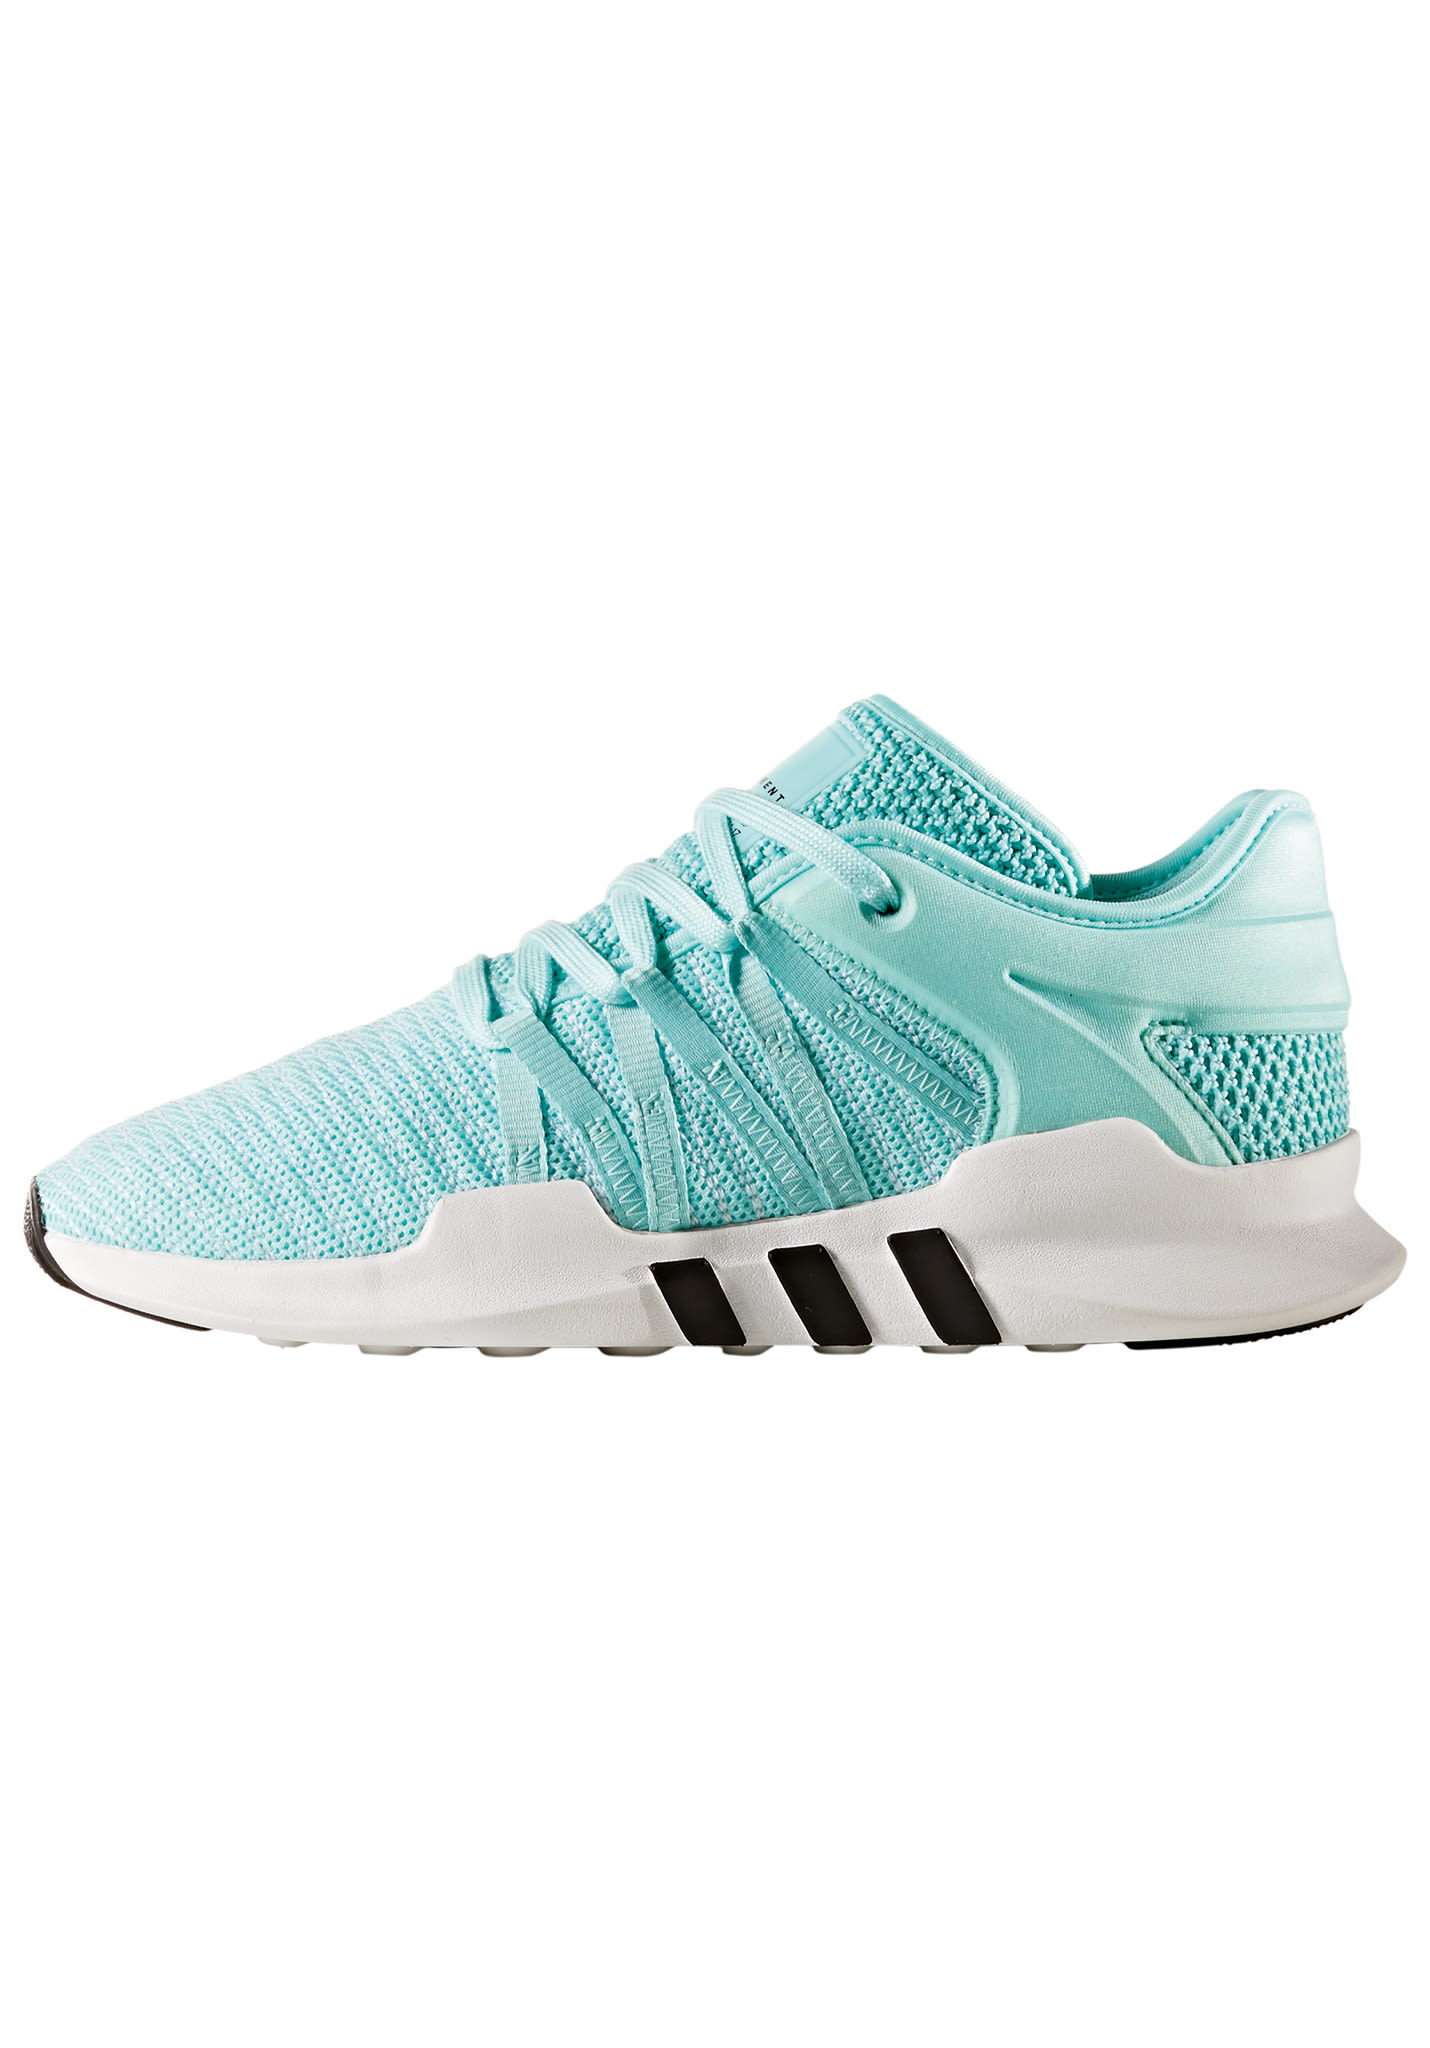 promo code 6a8d3 285c3 ADIDAS ORIGINALS Eqt Racing Adv - Sneakers voor Dames - Groen - Planet  Sports